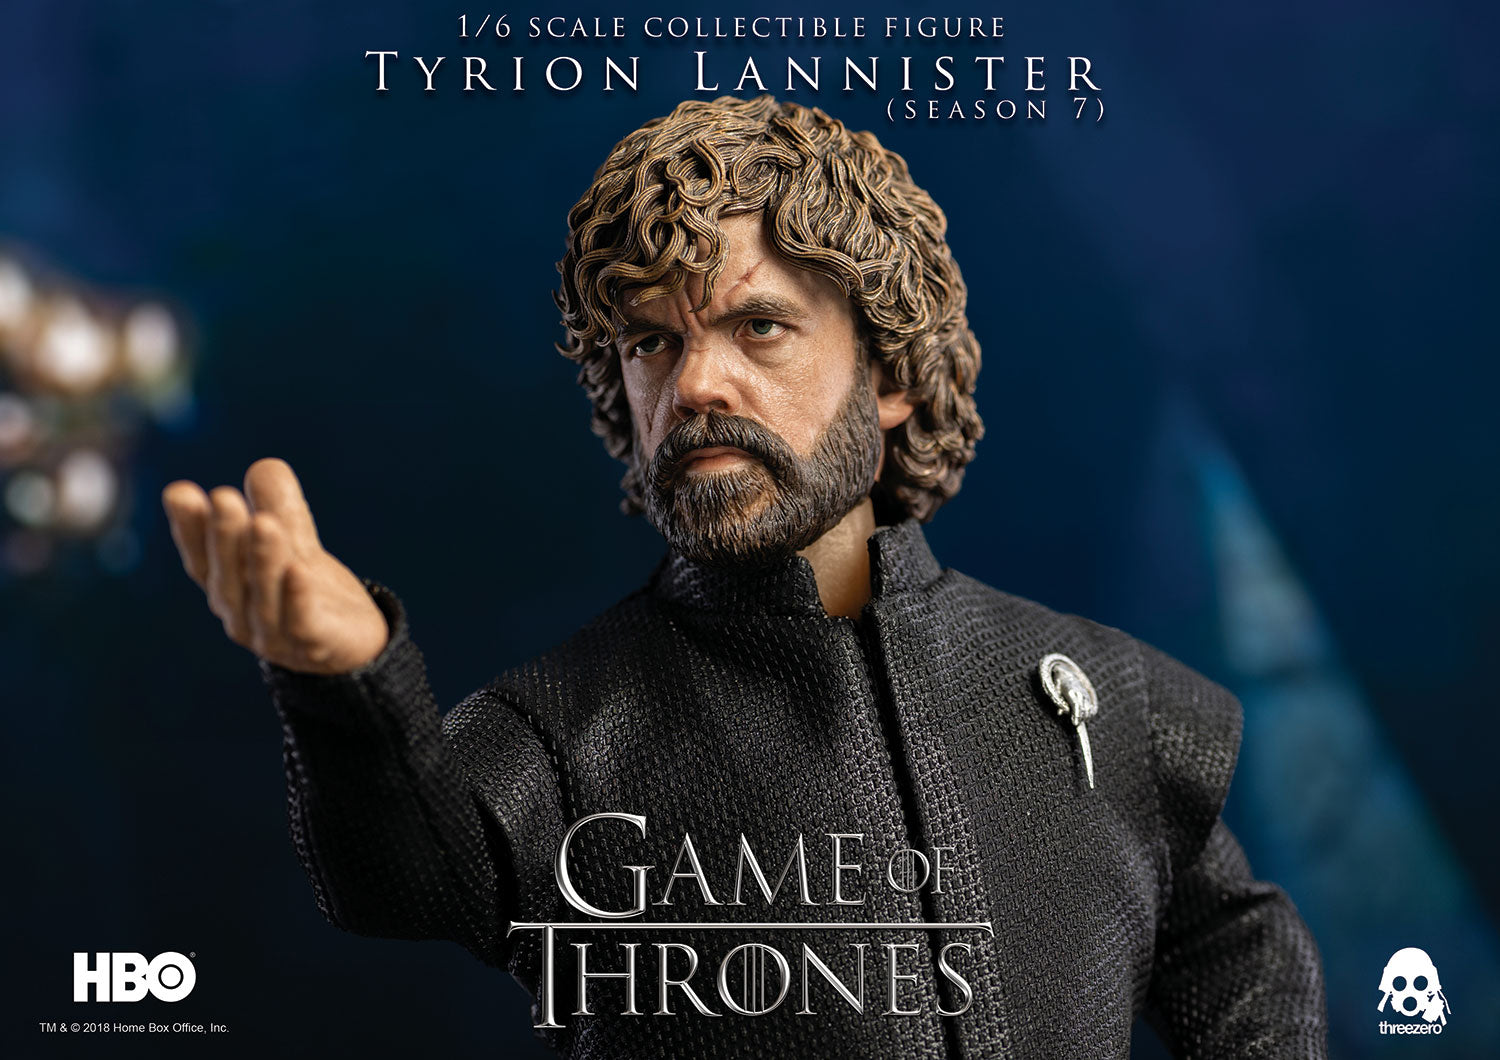 ThreeZero - Game of Thrones - Tyrion Lannister (Season 7)(Standard)(1/6 Scale)